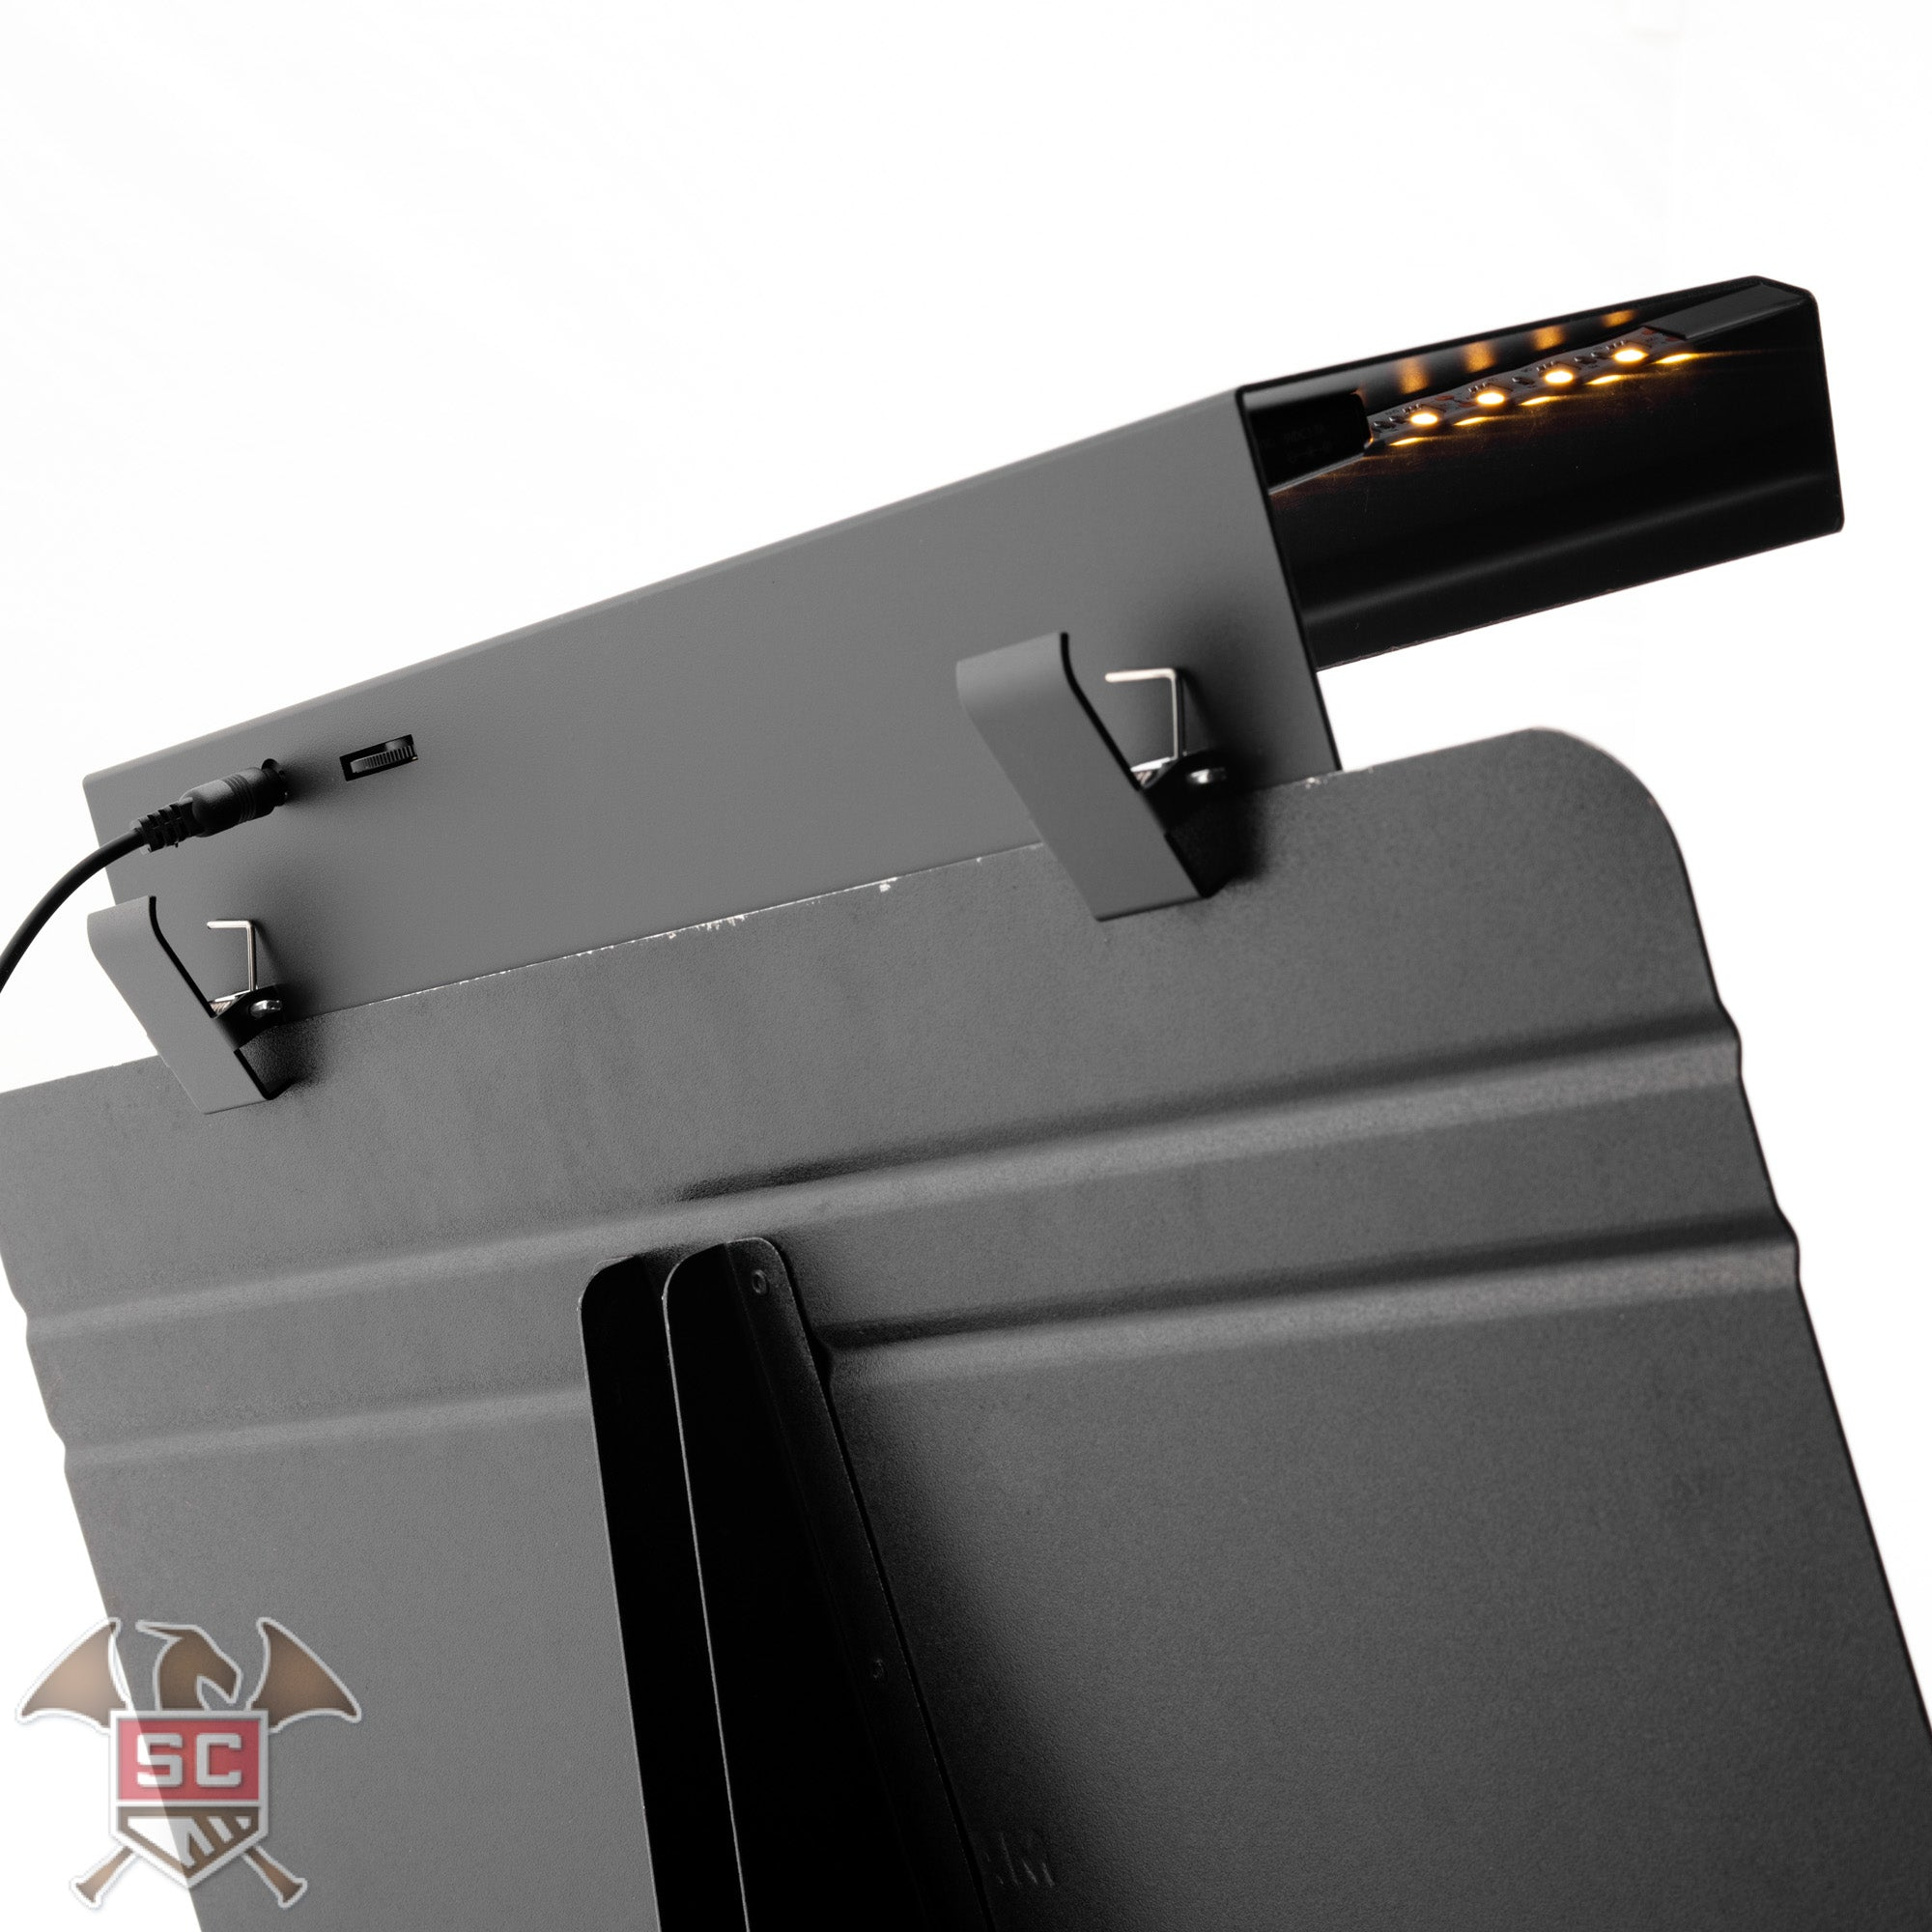 The Aria Forte model music stand light.